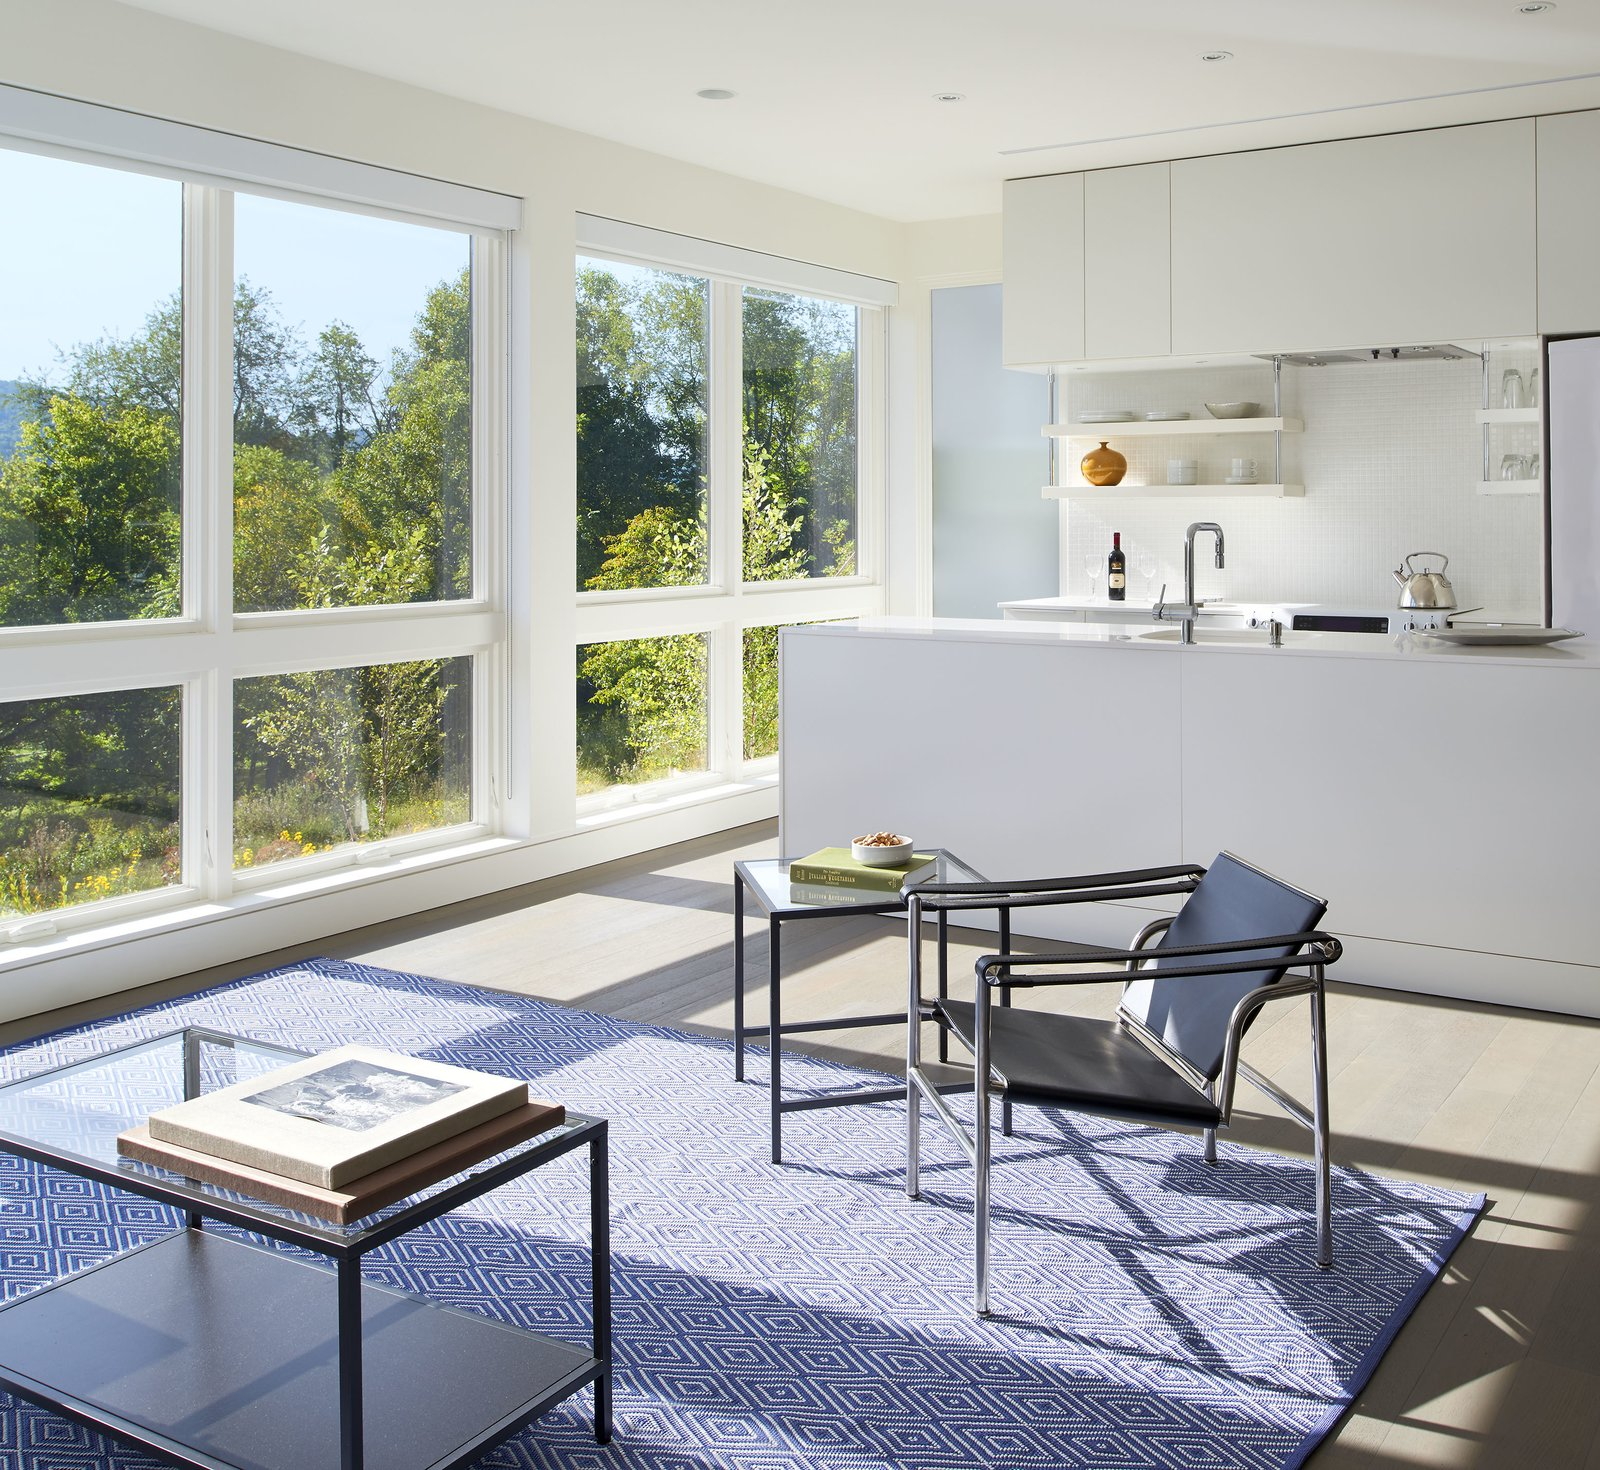 """In the ground floor apartment, """"there are picture windows with operable awning [windows] below, which provide the cross ventilation,"""" said Wiedemann. Tagged: Windows, Awning, and Picture.  Best Windows Photos from A Modern Farmhouse Blends Community-Minded Living With the Country Landscape"""